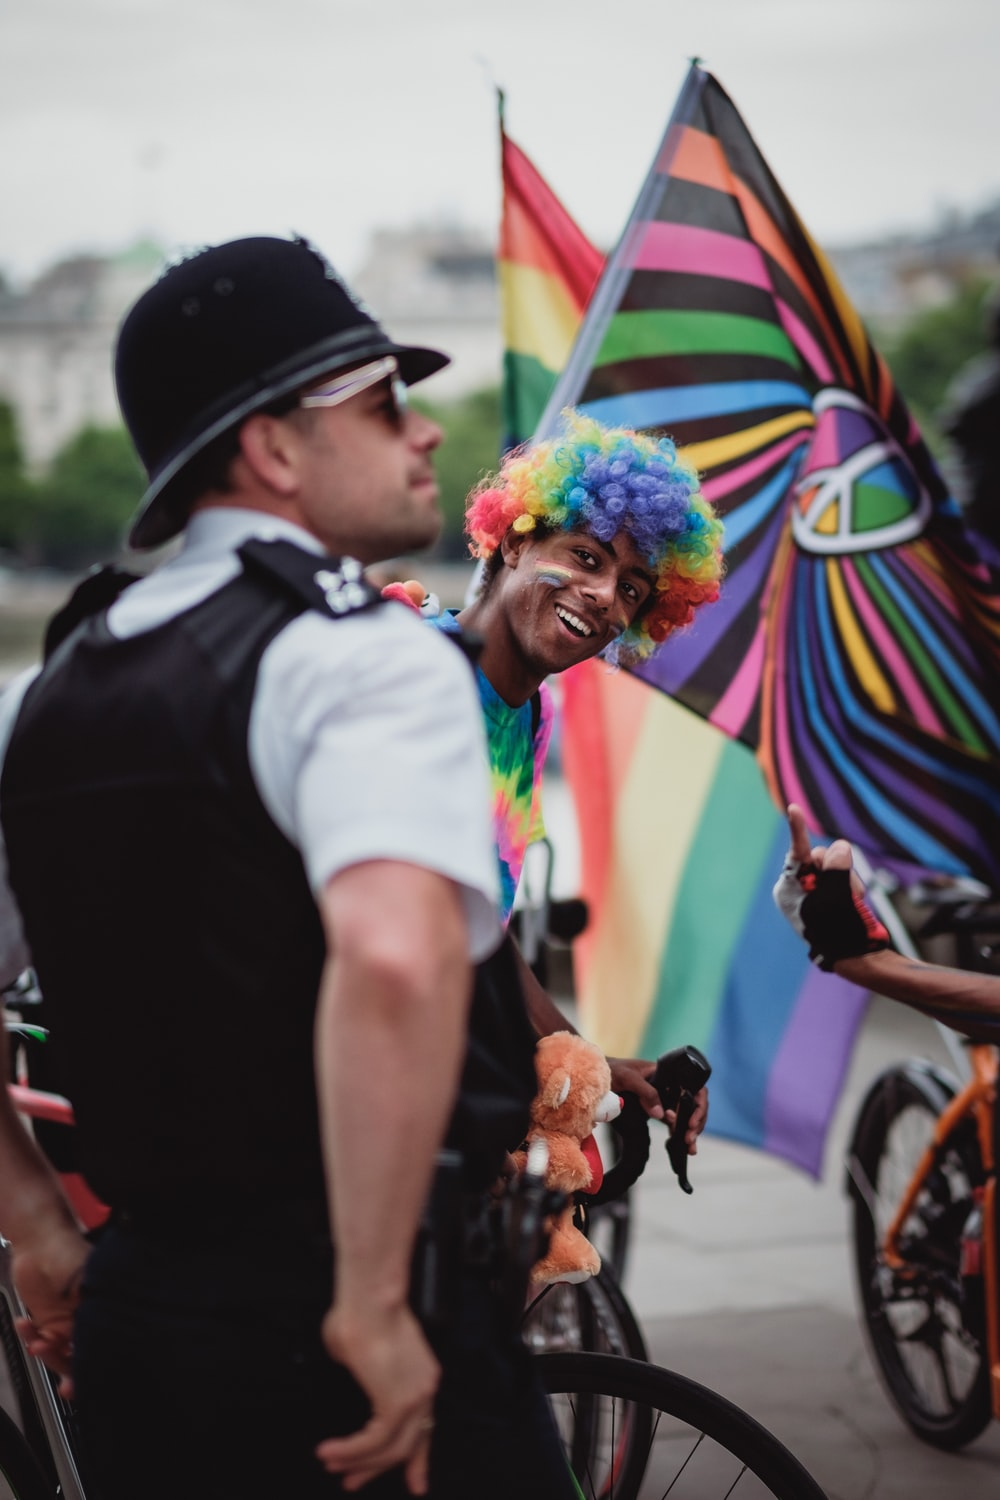 person wearing rainbow wig riding bicycle